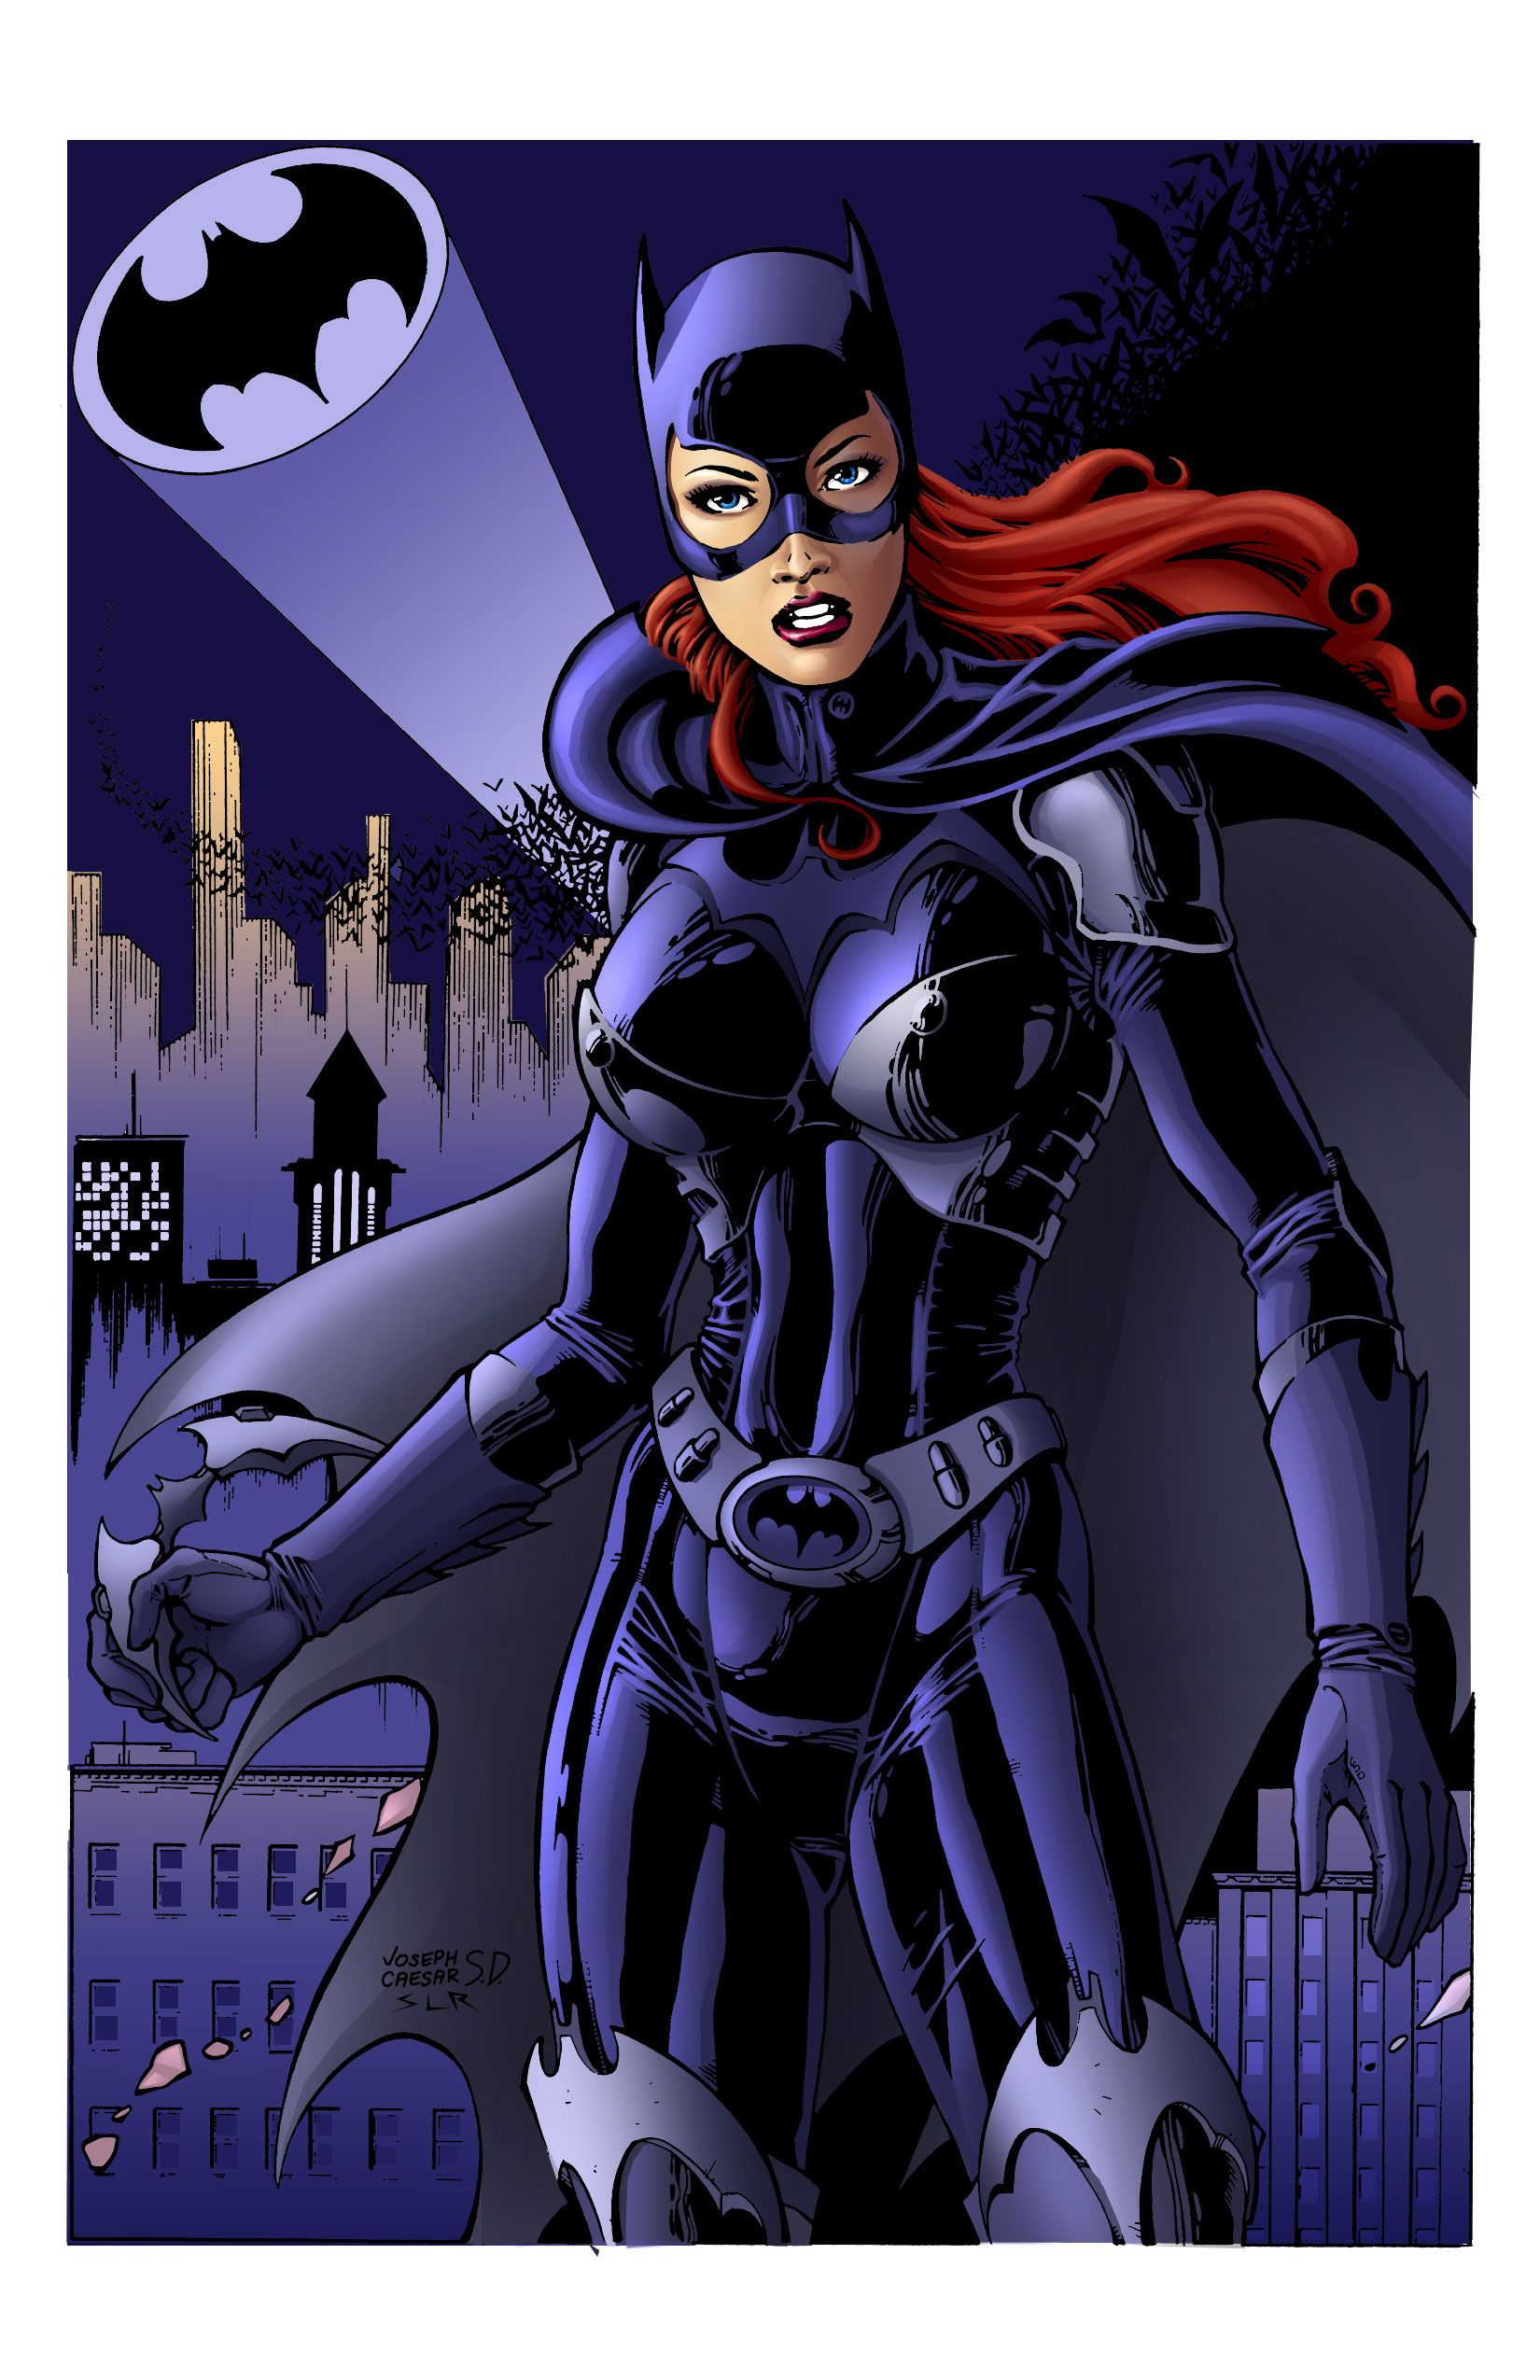 Batgirl - Colored in Photoshop.